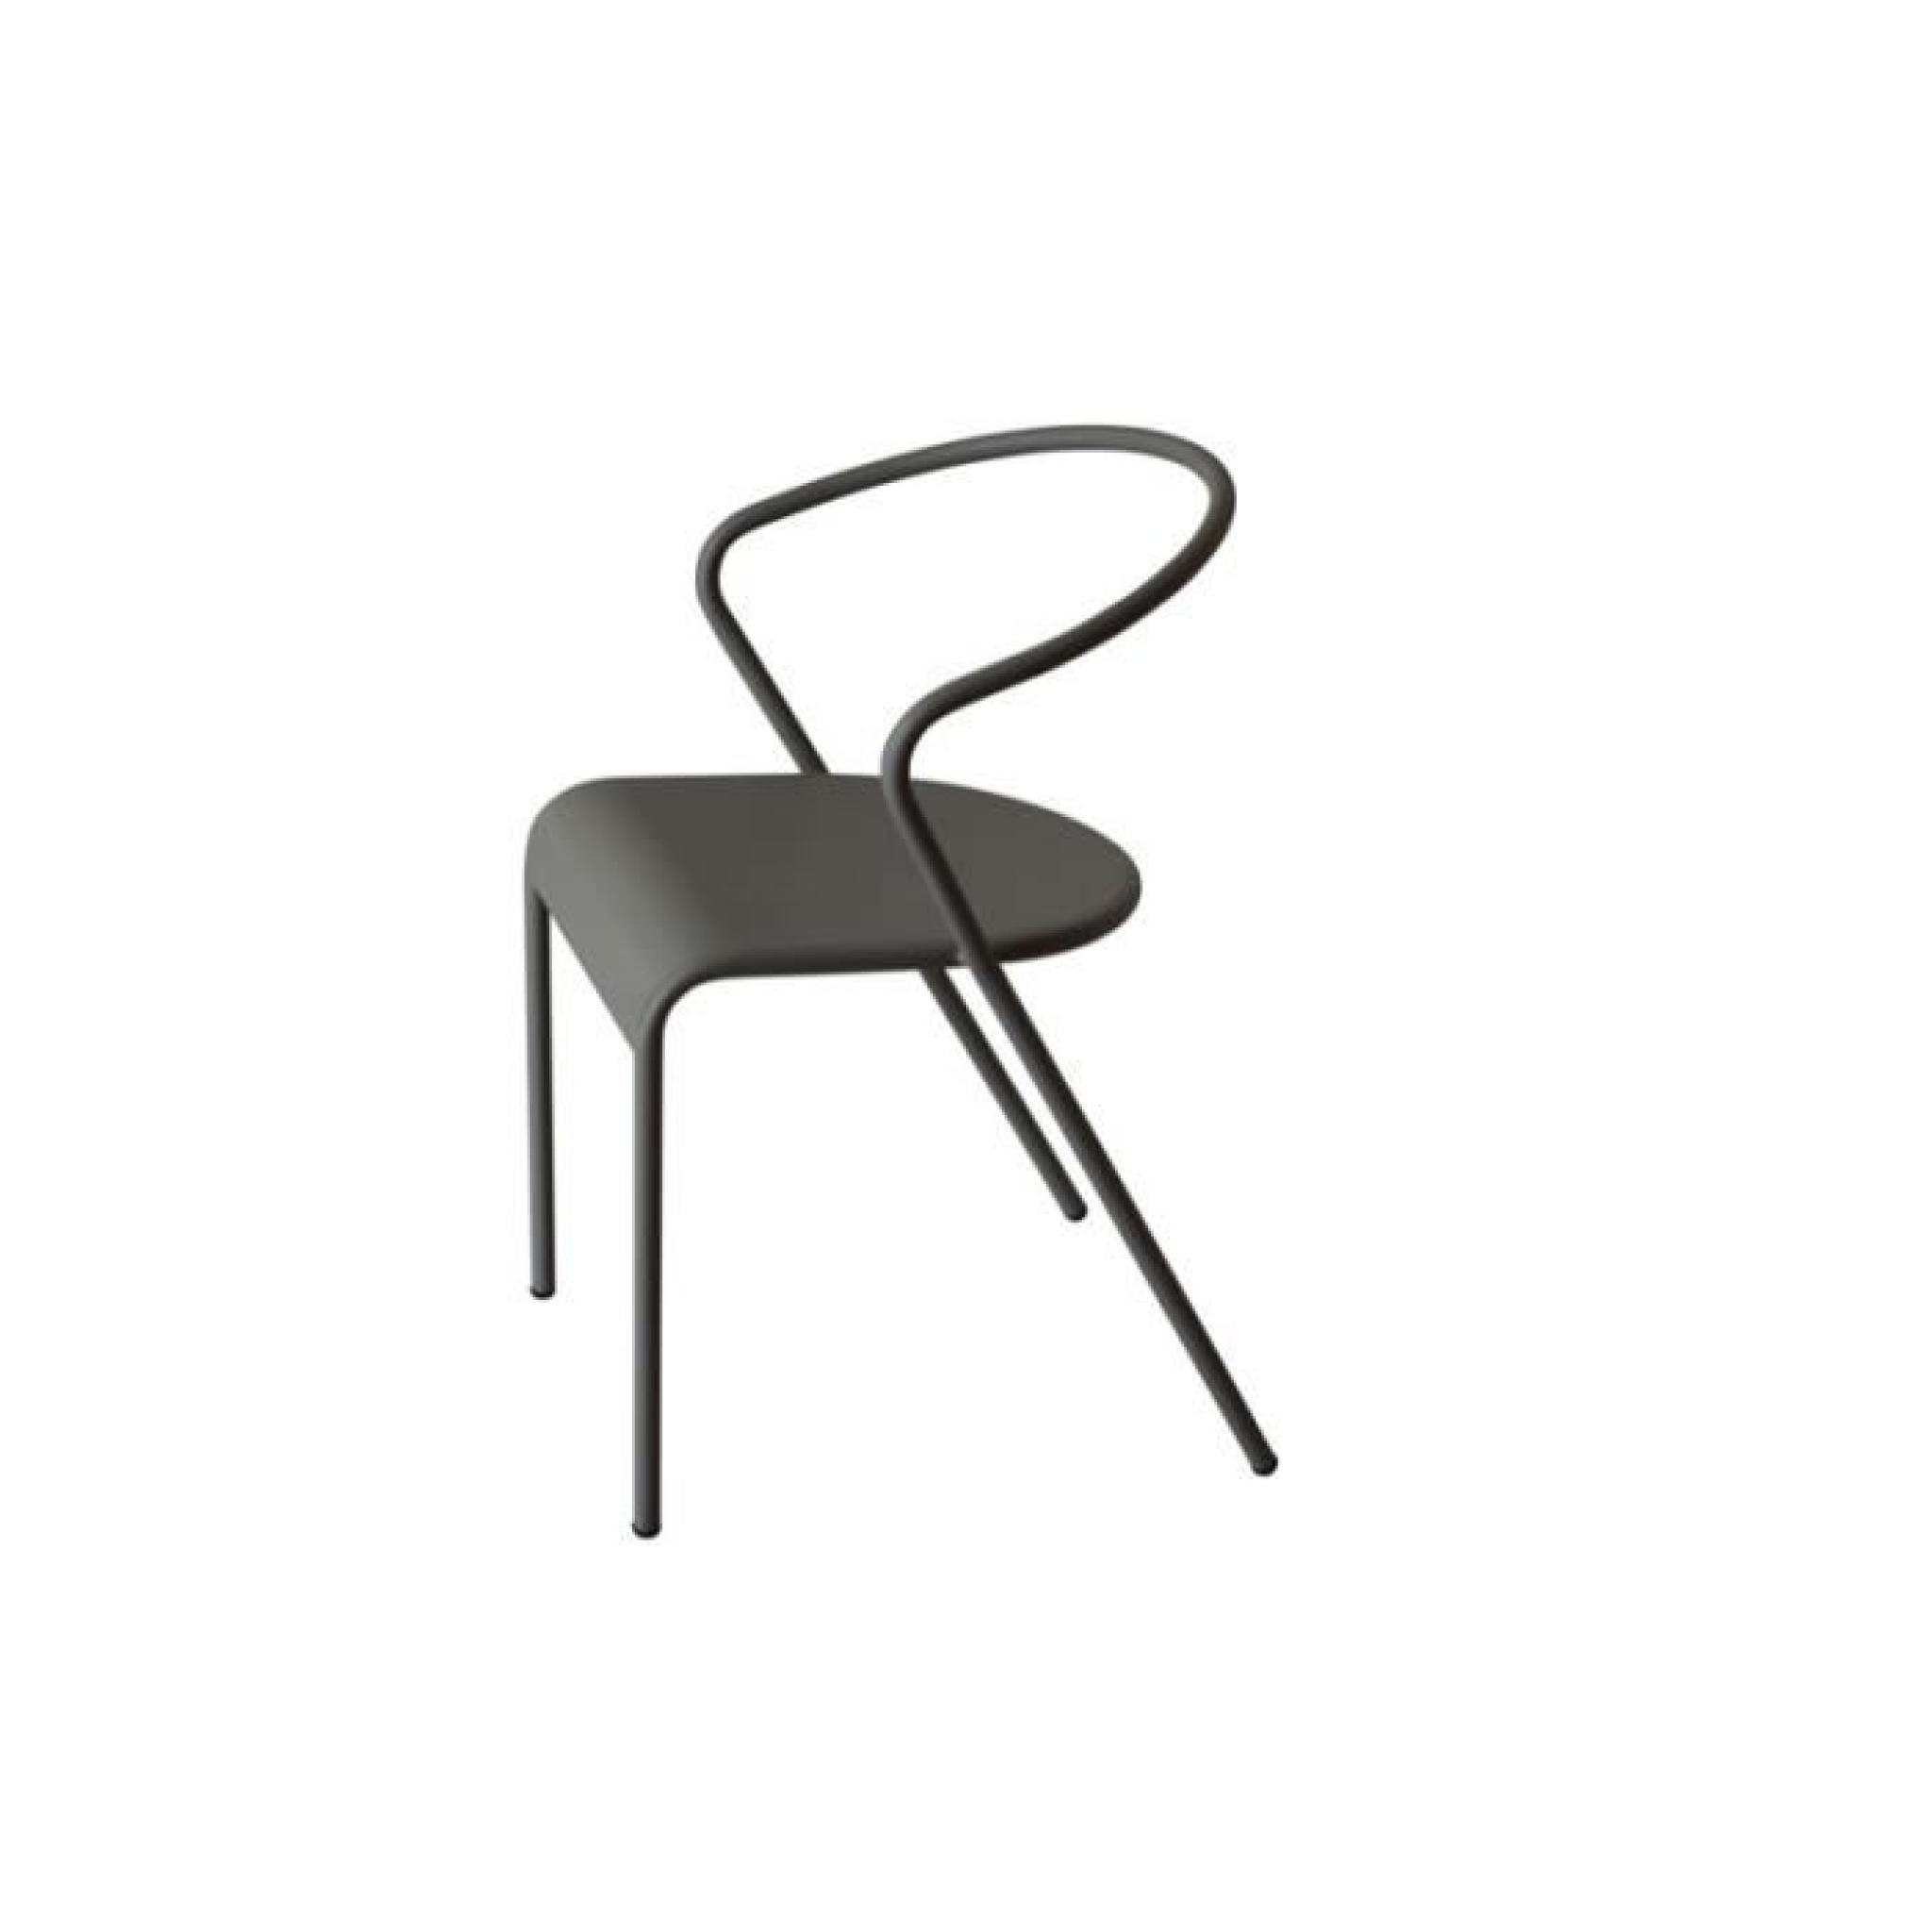 Lot de 2 chaises swithome akaros m tal grises achat - Chaise grise pas cher ...